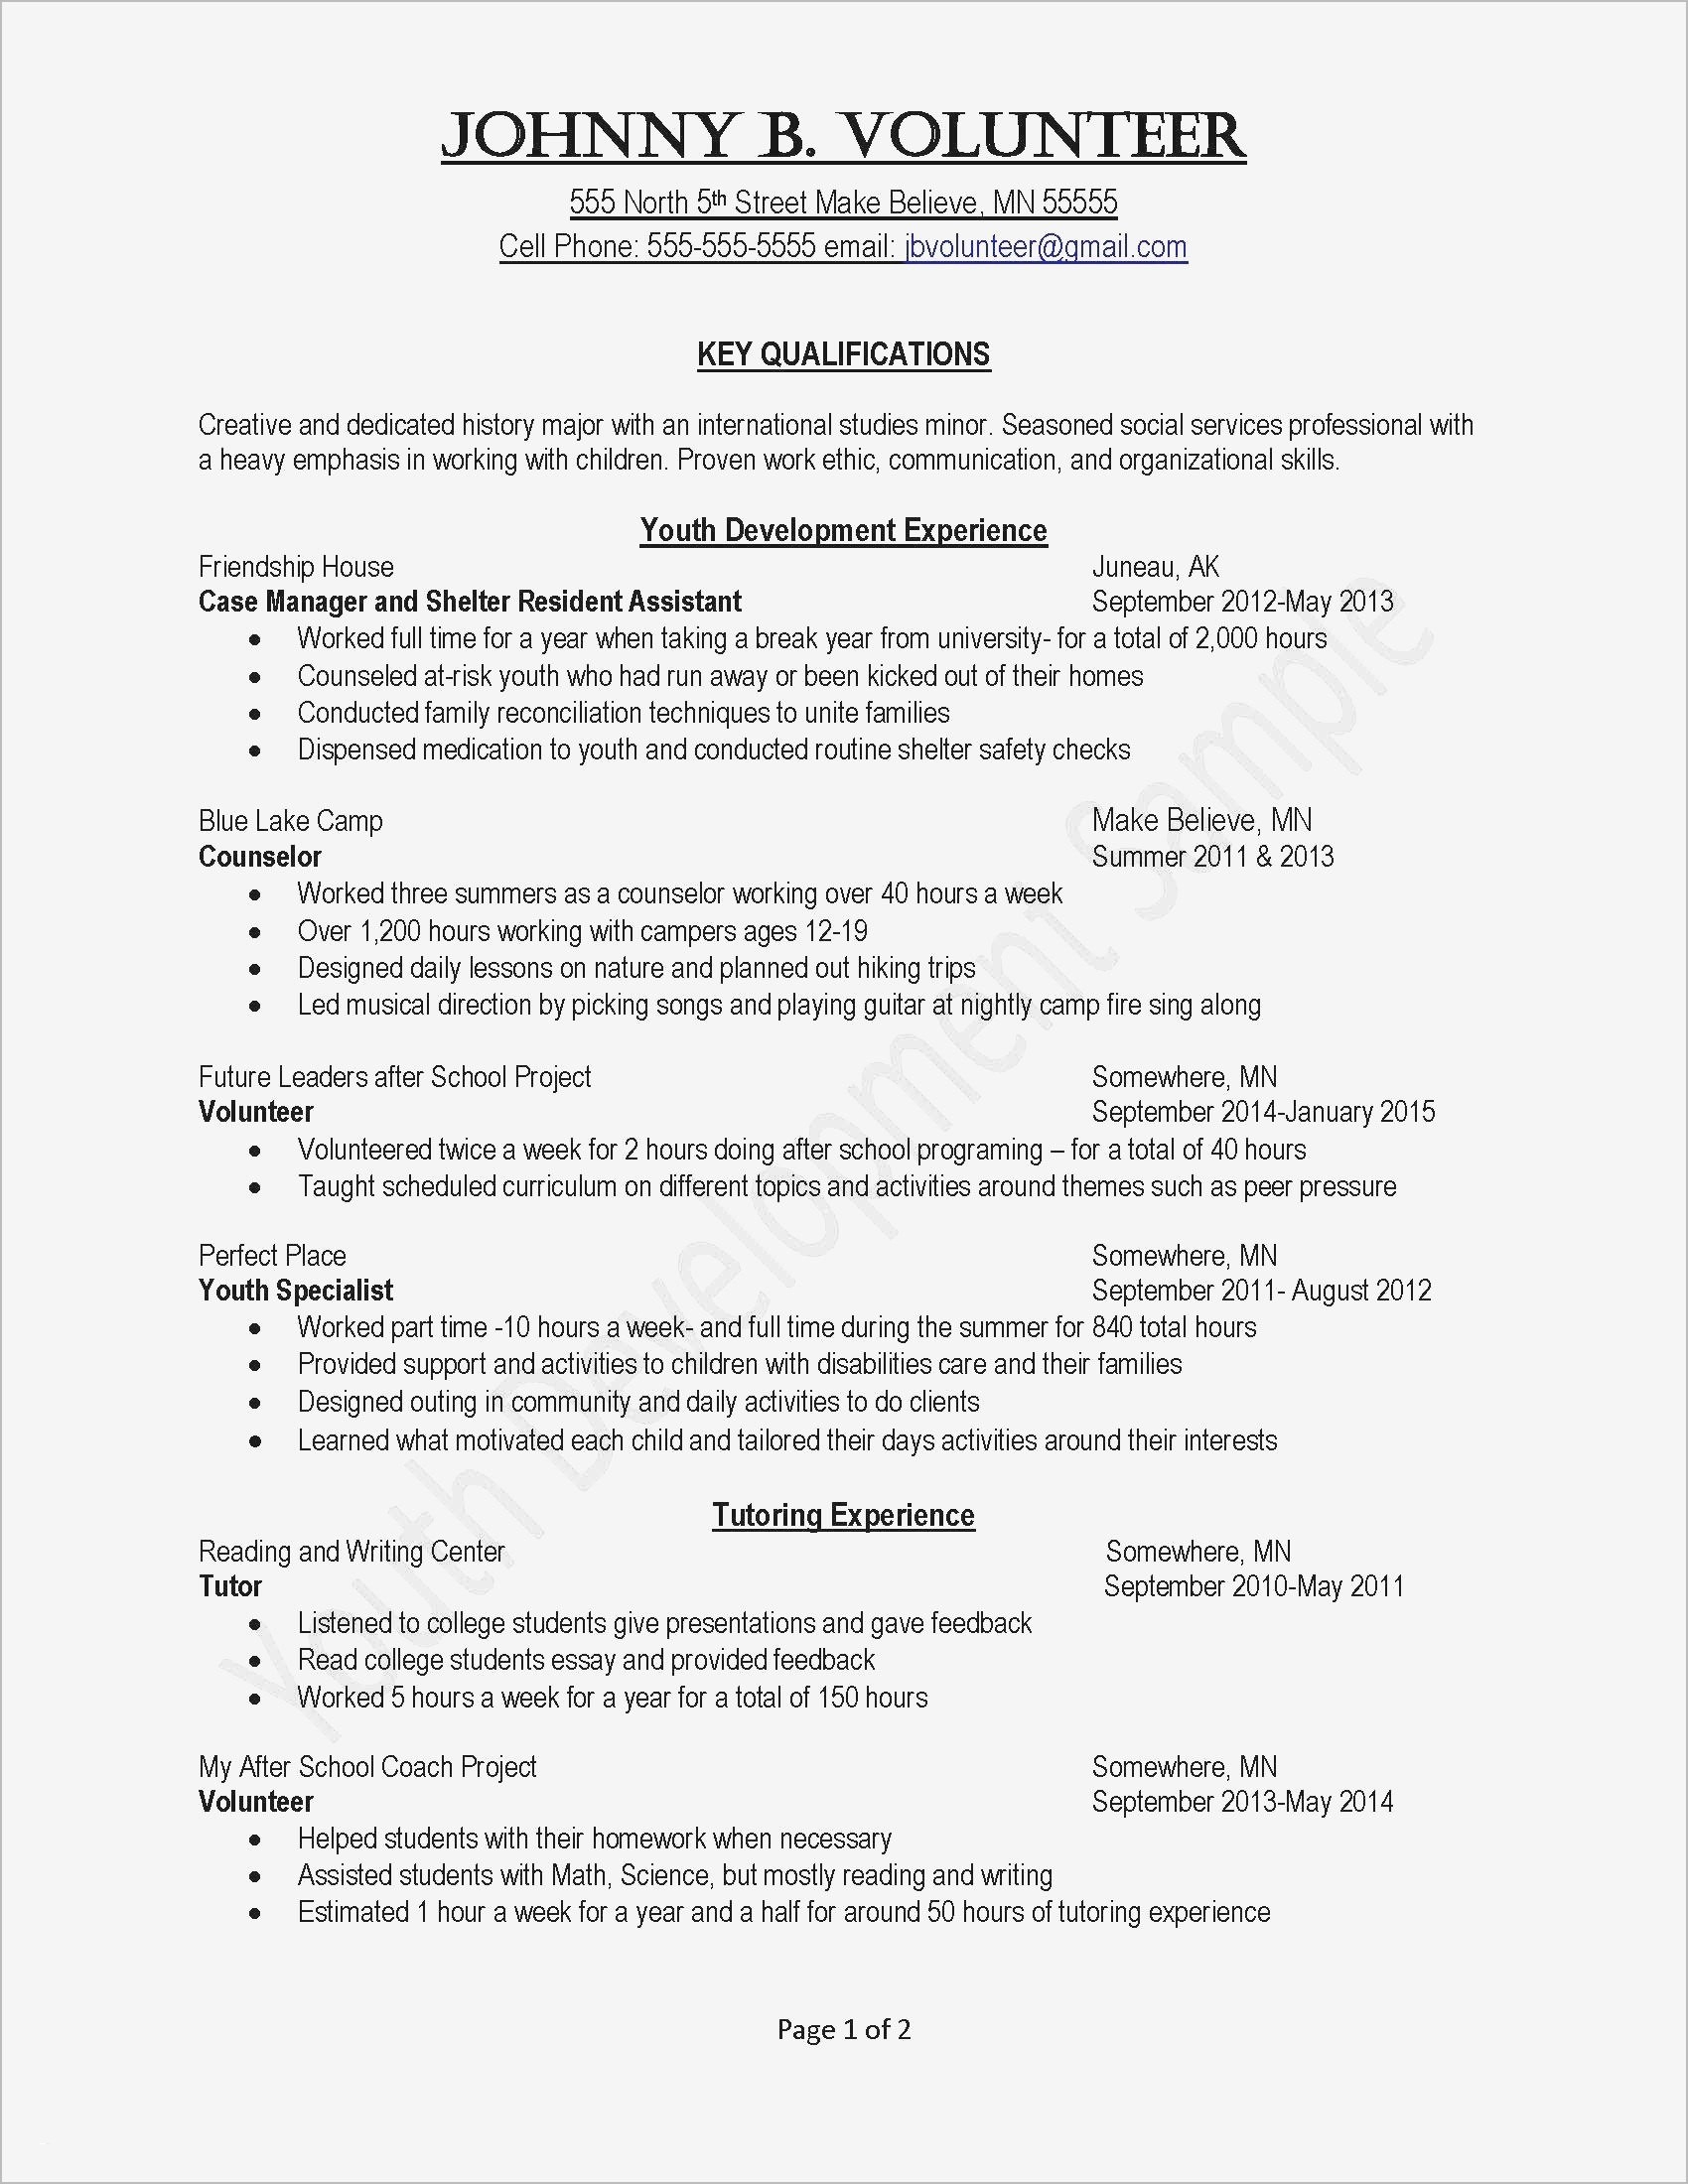 General Cover Letter Template Free - General Resume Template Free Elegant Job Fer Letter Template Us Copy